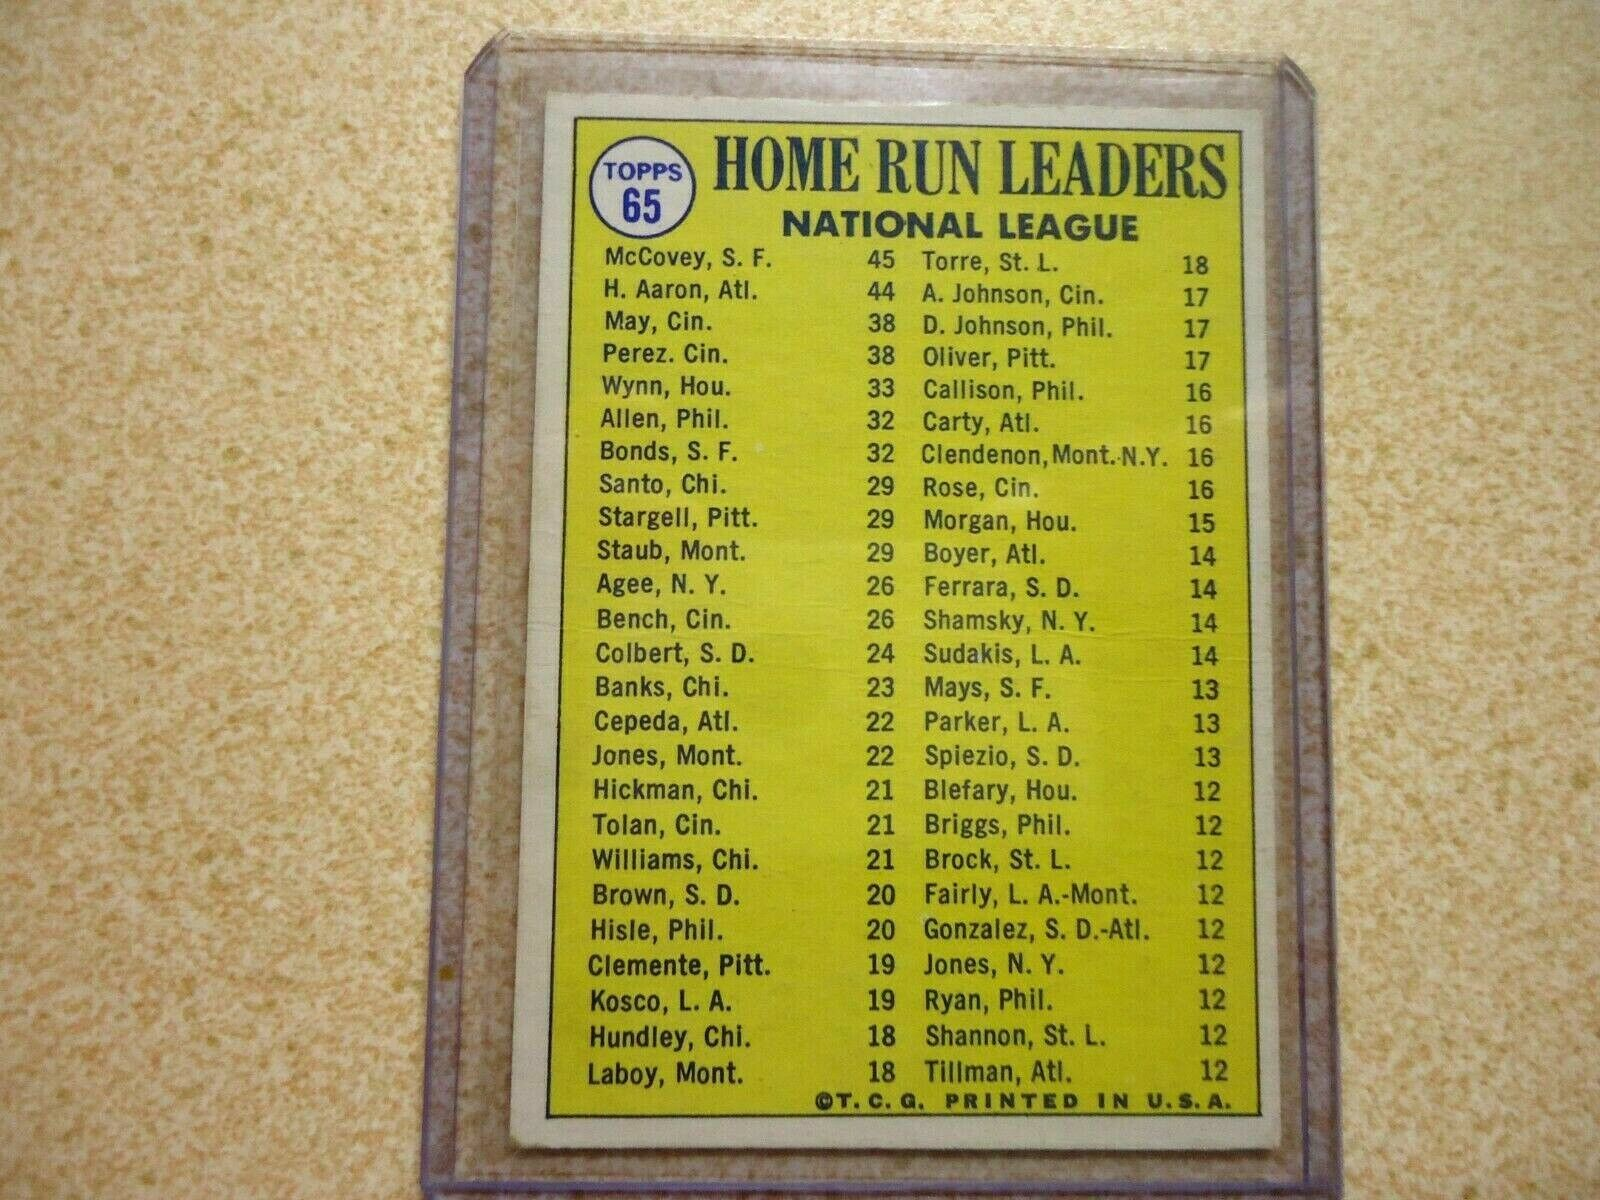 1970 TOPPS 1969 HOME RUN LEADERSS HANK AARON, WLLIE MCCOVEY AND LEE MAY NMT-MT  - $20.00